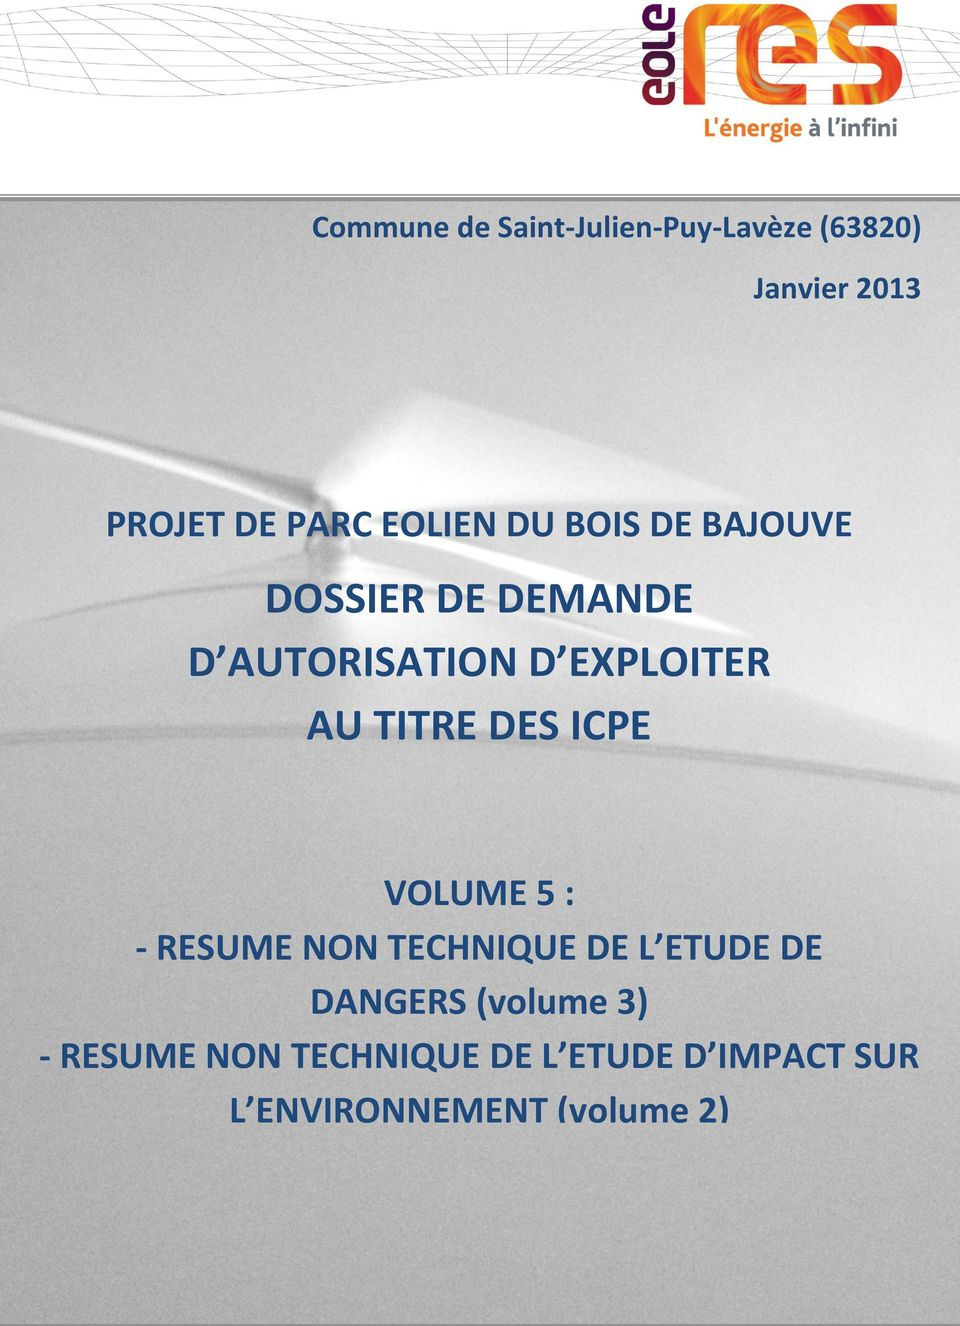 TITRE DES ICPE VOLUME 5 : - RESUME NON TECHNIQUE DE L ETUDE DE DANGERS